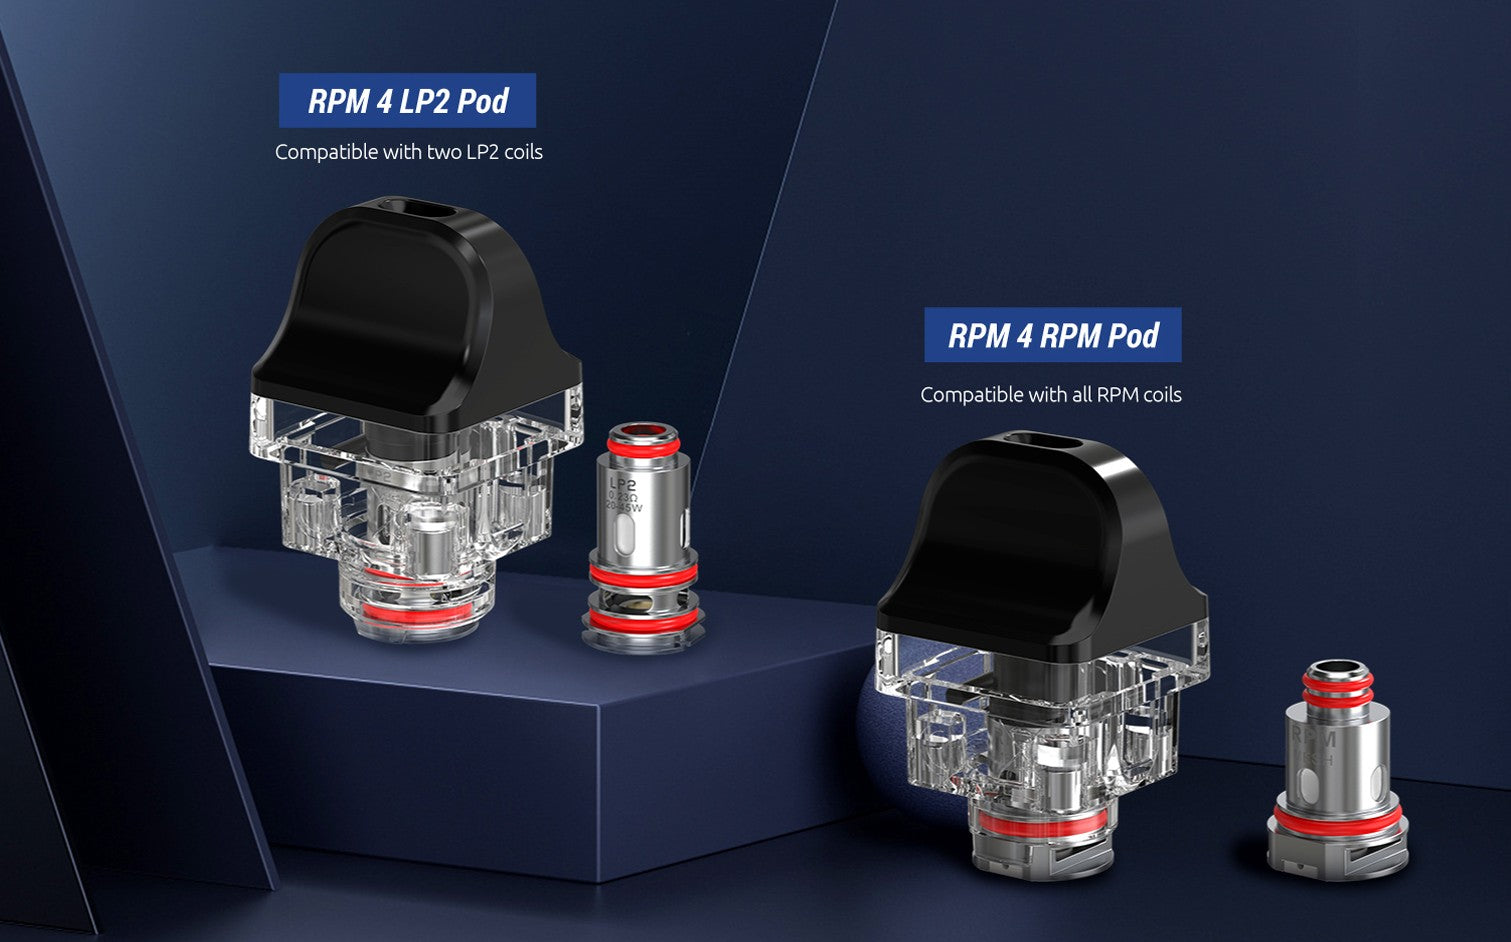 RPM4 has two styles of replaceable pods which take a huge range of coil options